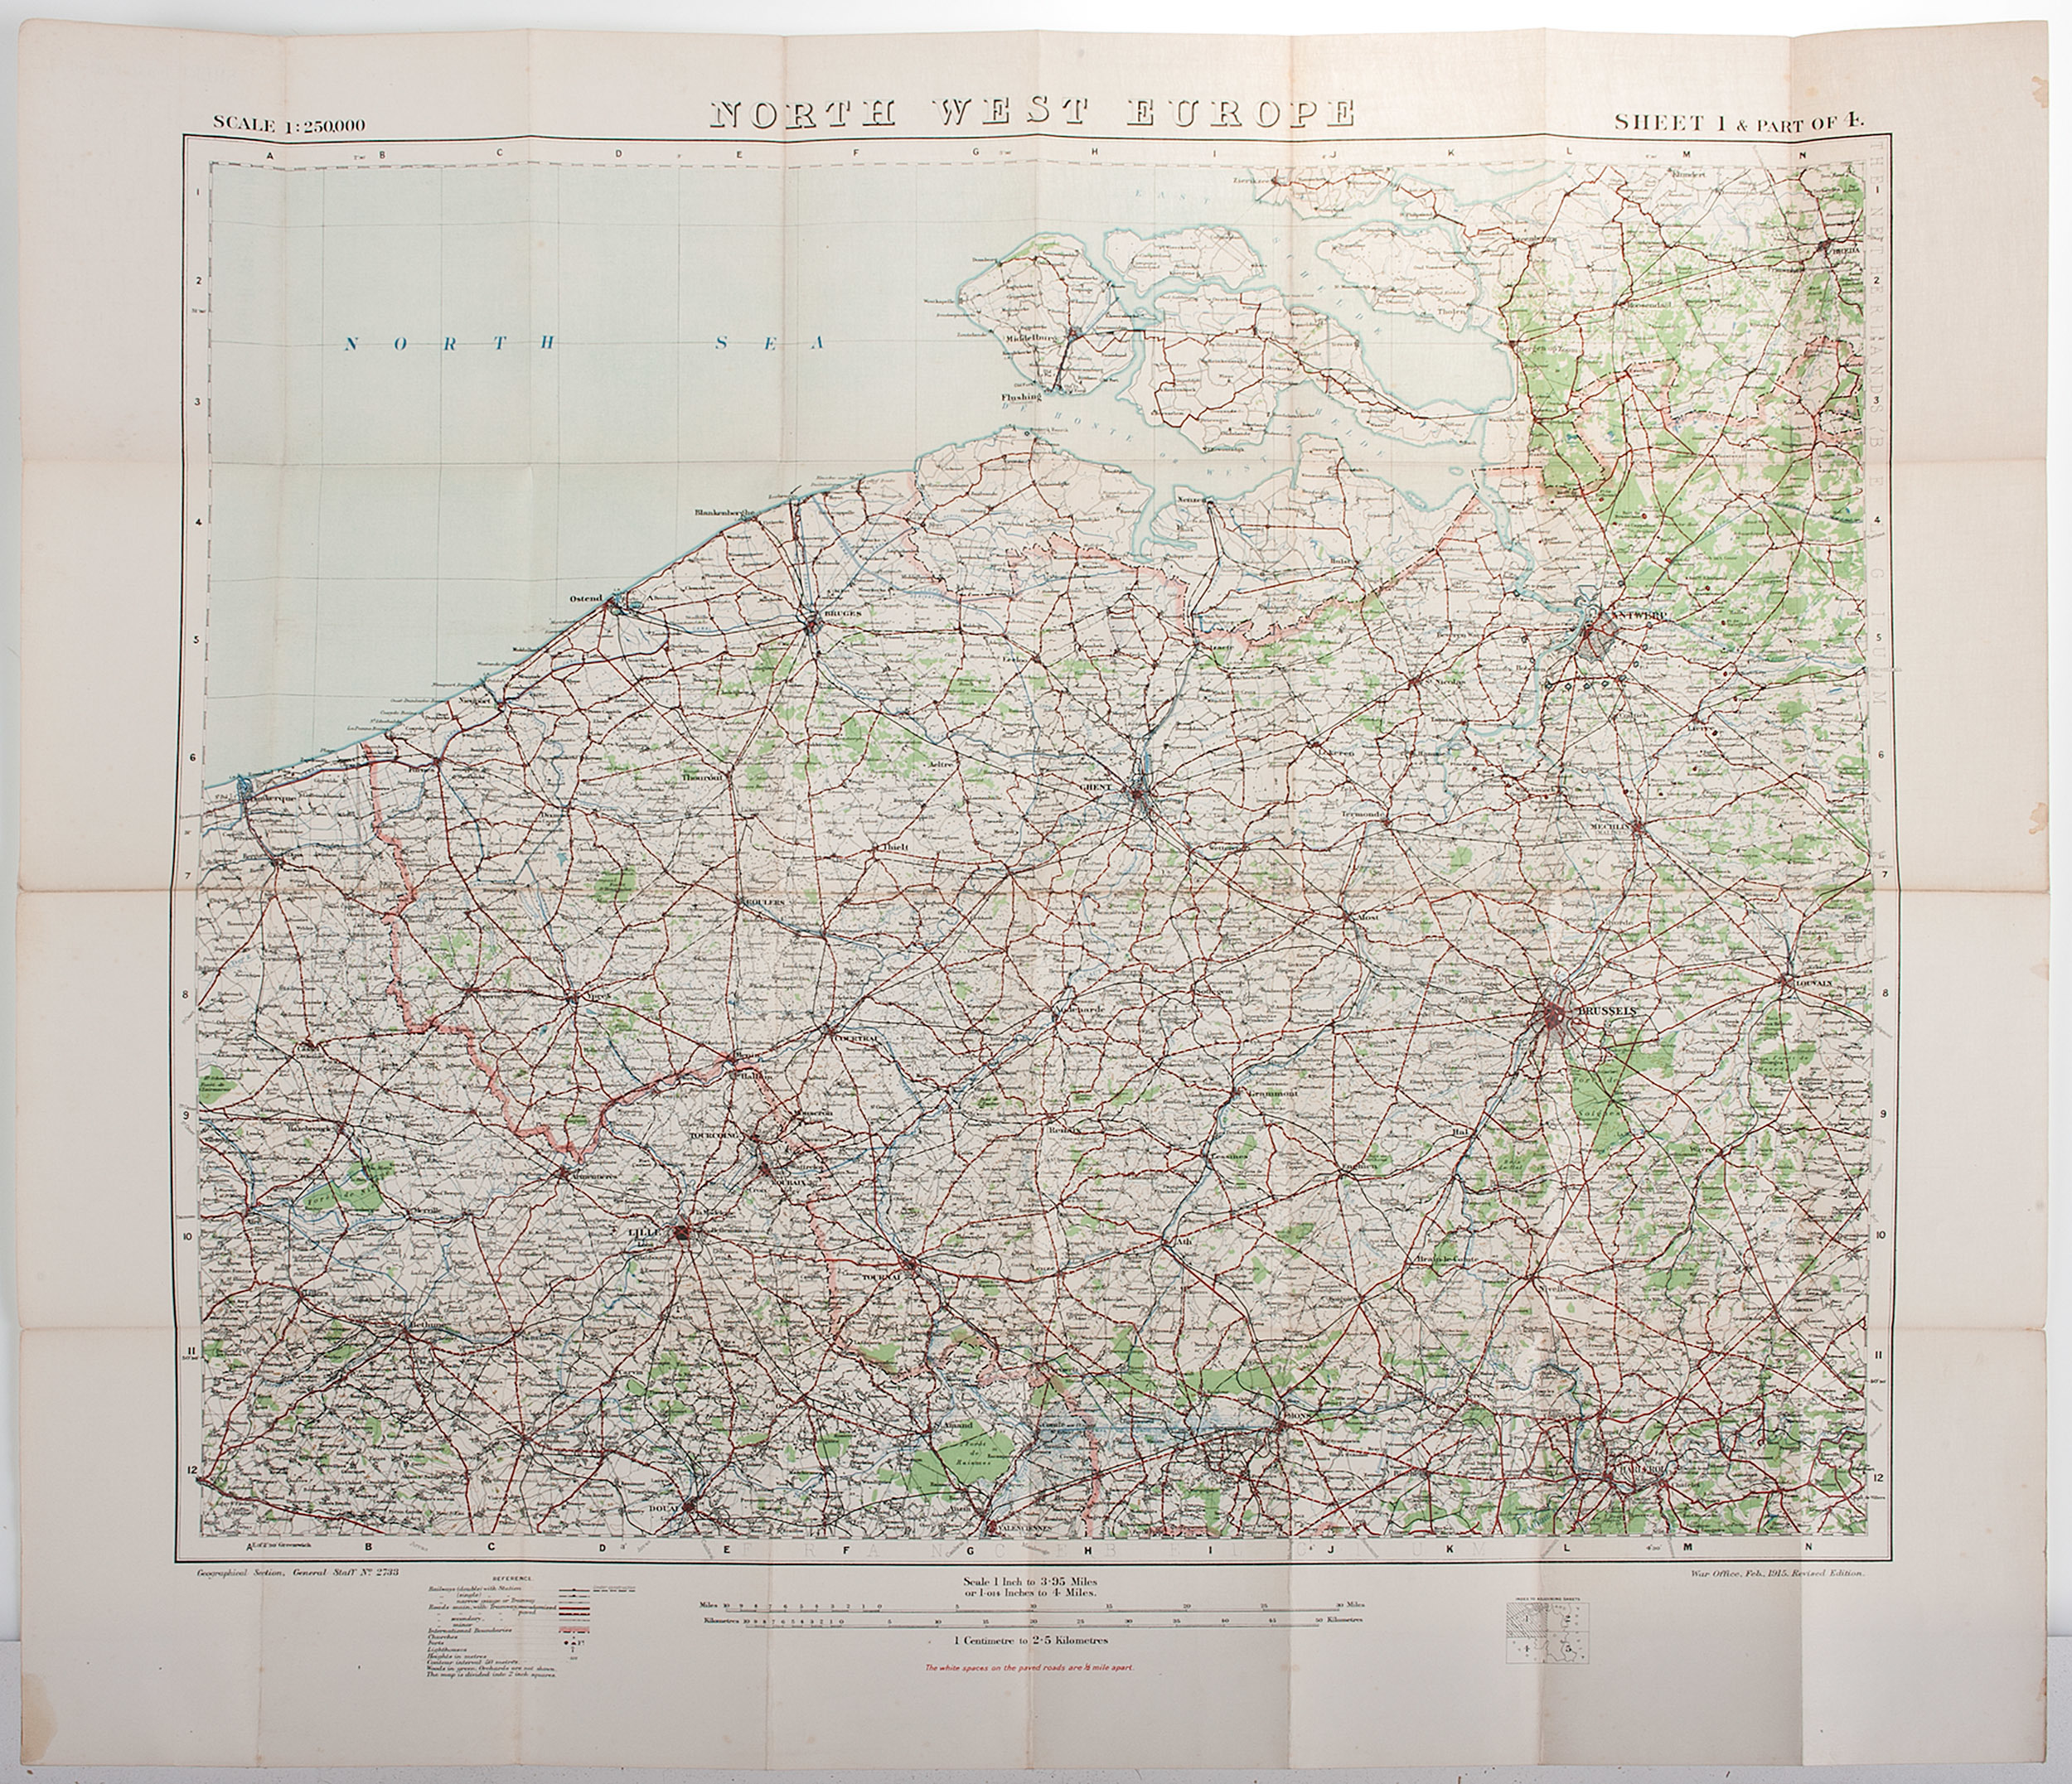 World war one maps wwi military maps of north west europe world war one maps wwi military maps of north west europe belgium gumiabroncs Images